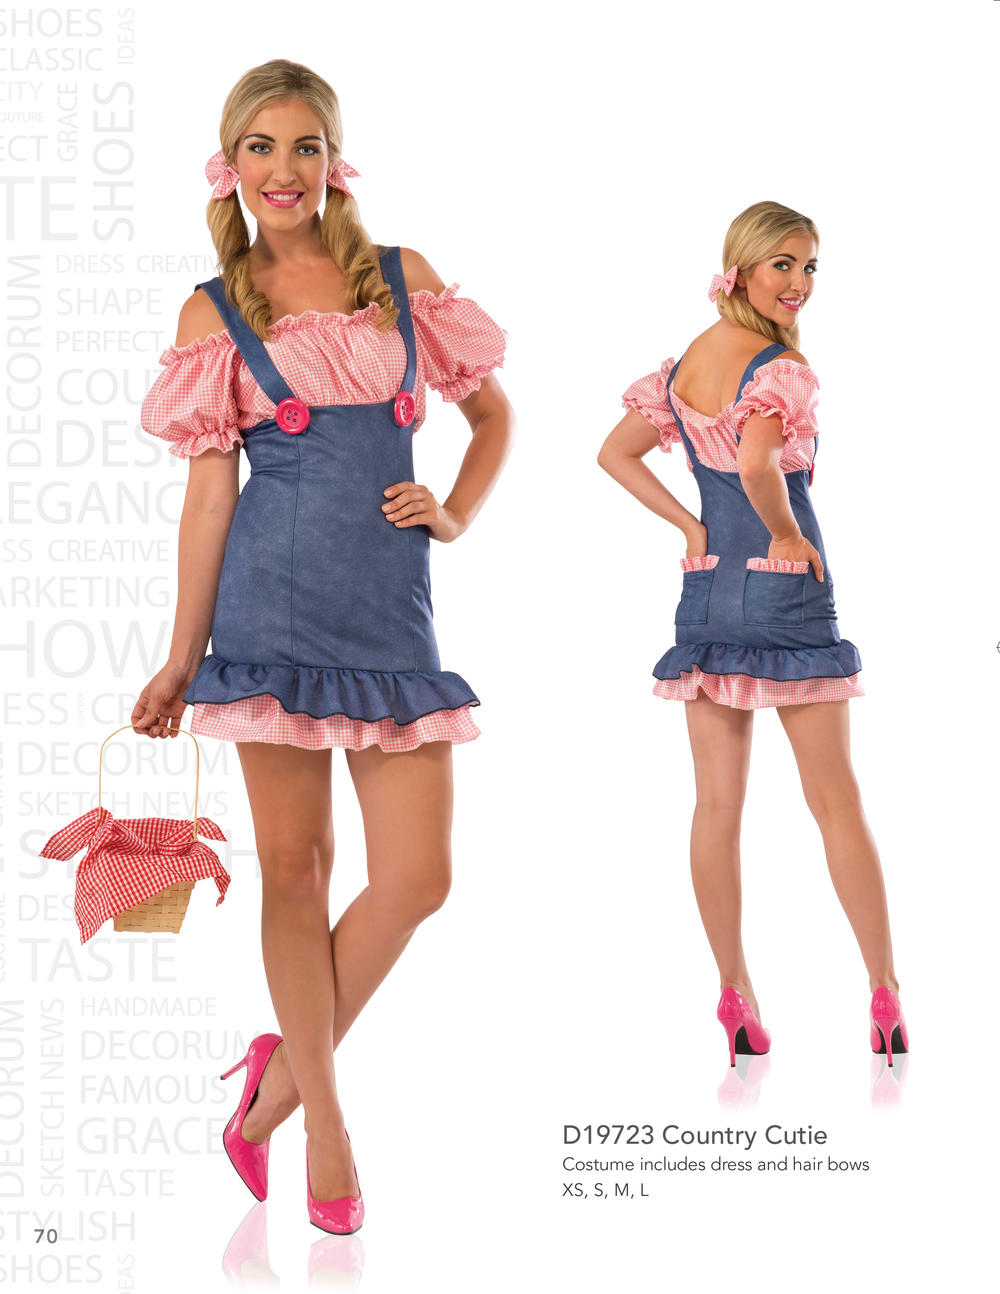 D19723 Country Cutie